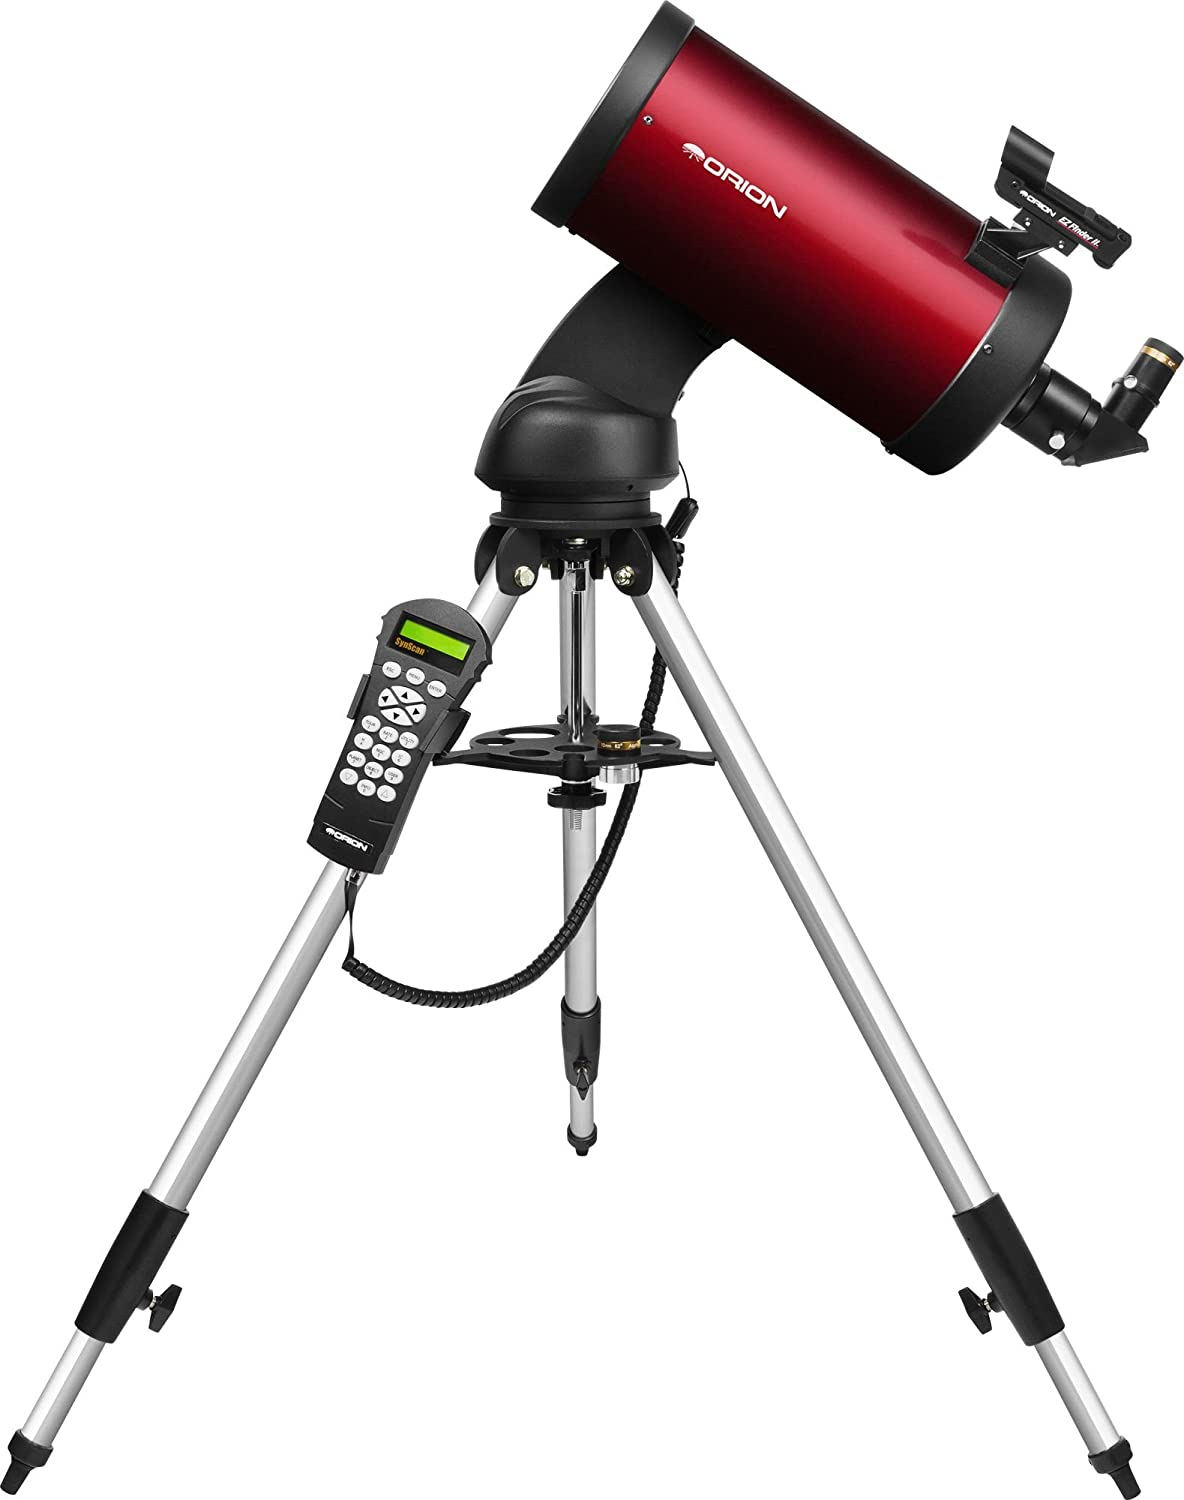 Orion StarSeeker IV 150mm GoTo Mak-Cass Telescope 13166